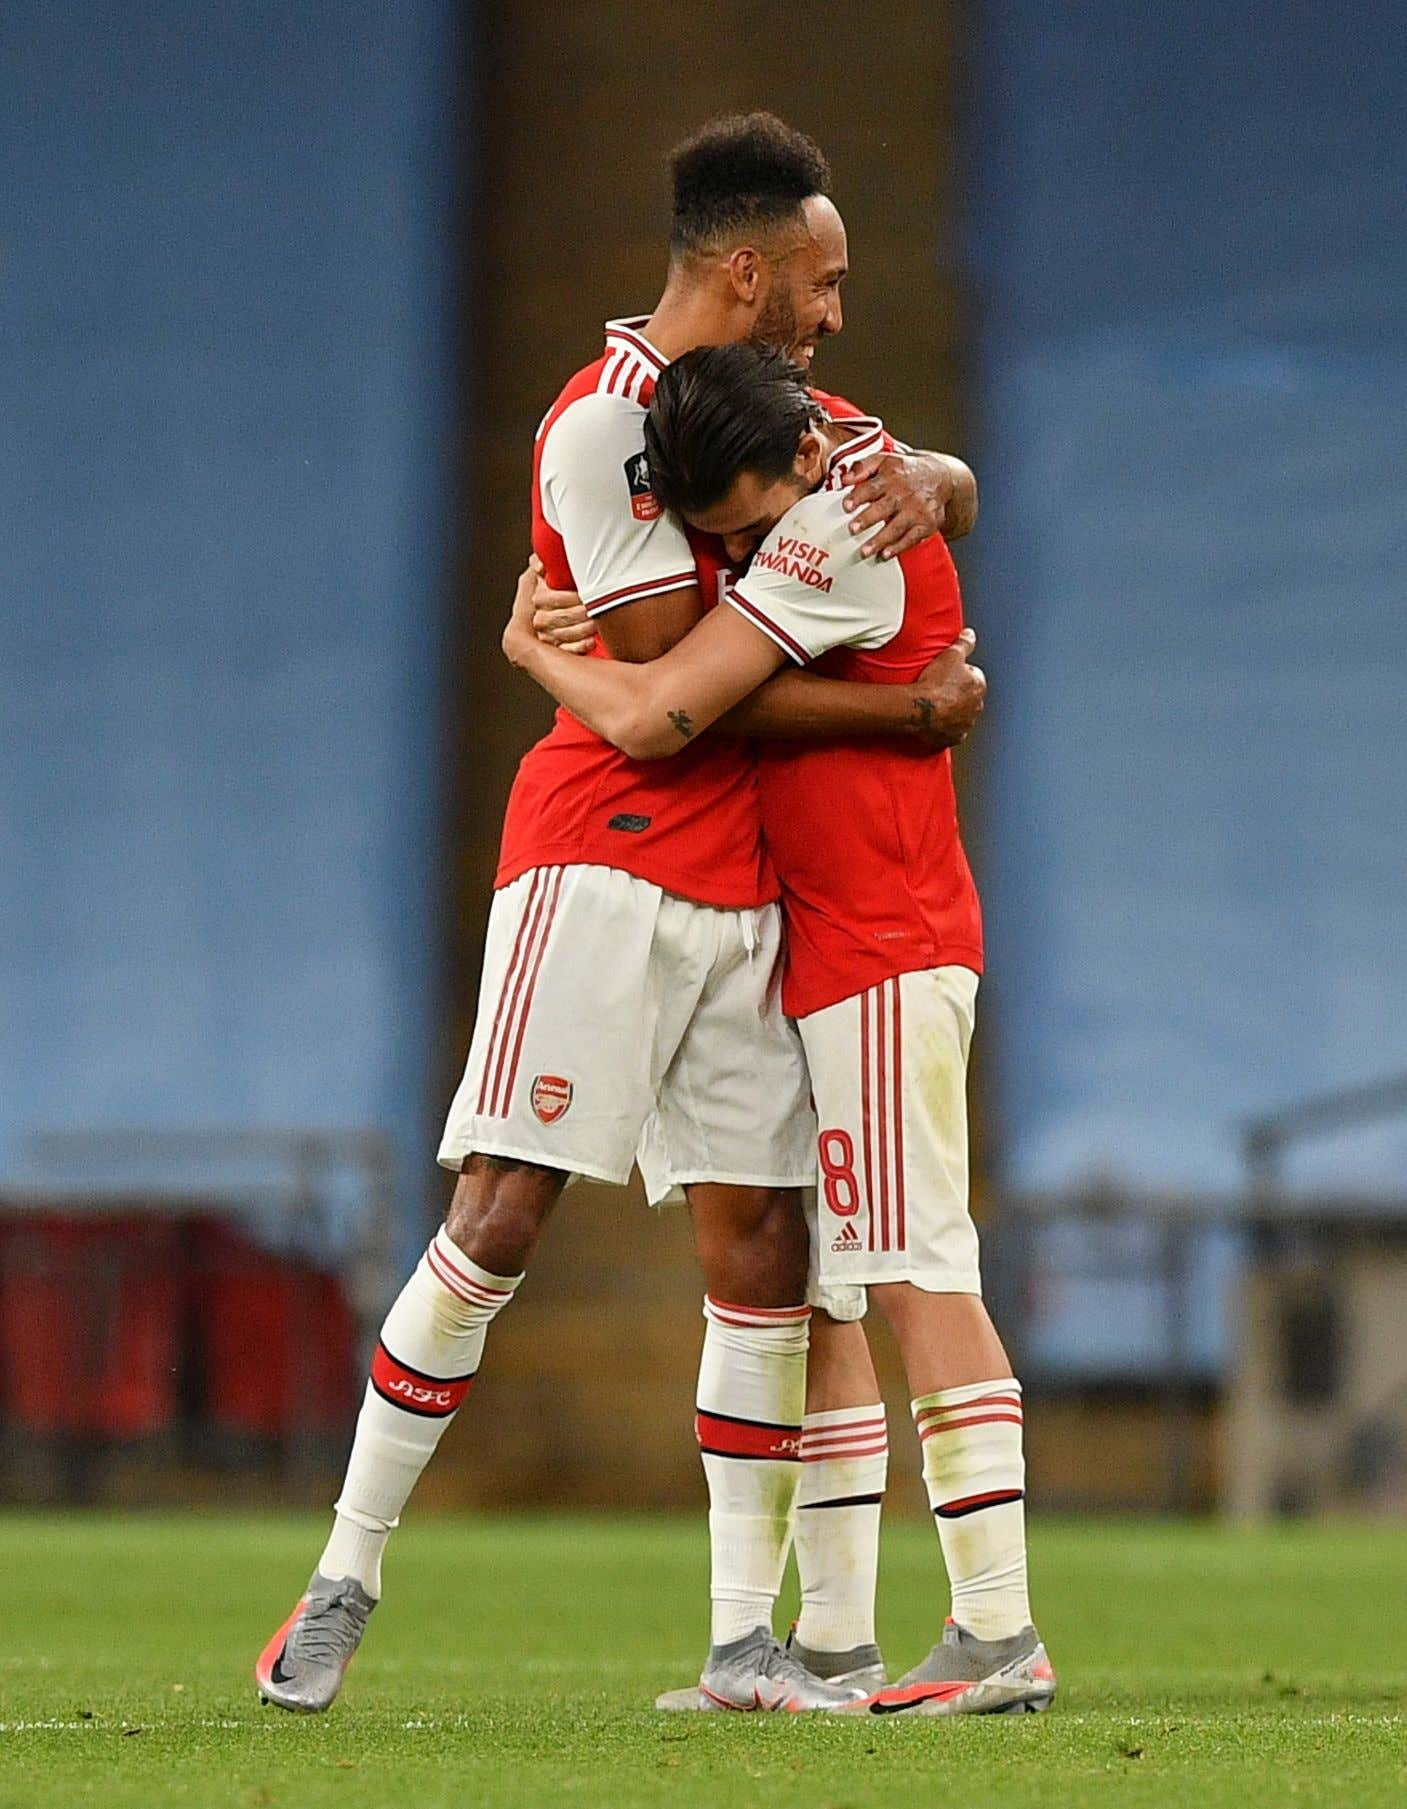 Pierre-Emerick Aubameyang of Arsenal (L) and Dani Ceballos of Arsenal (R) celebrate after the English FA Cup semi final match between Manchester City and Arsenal London at the Wembley Stadium in London, Britain, 18 July 2020.